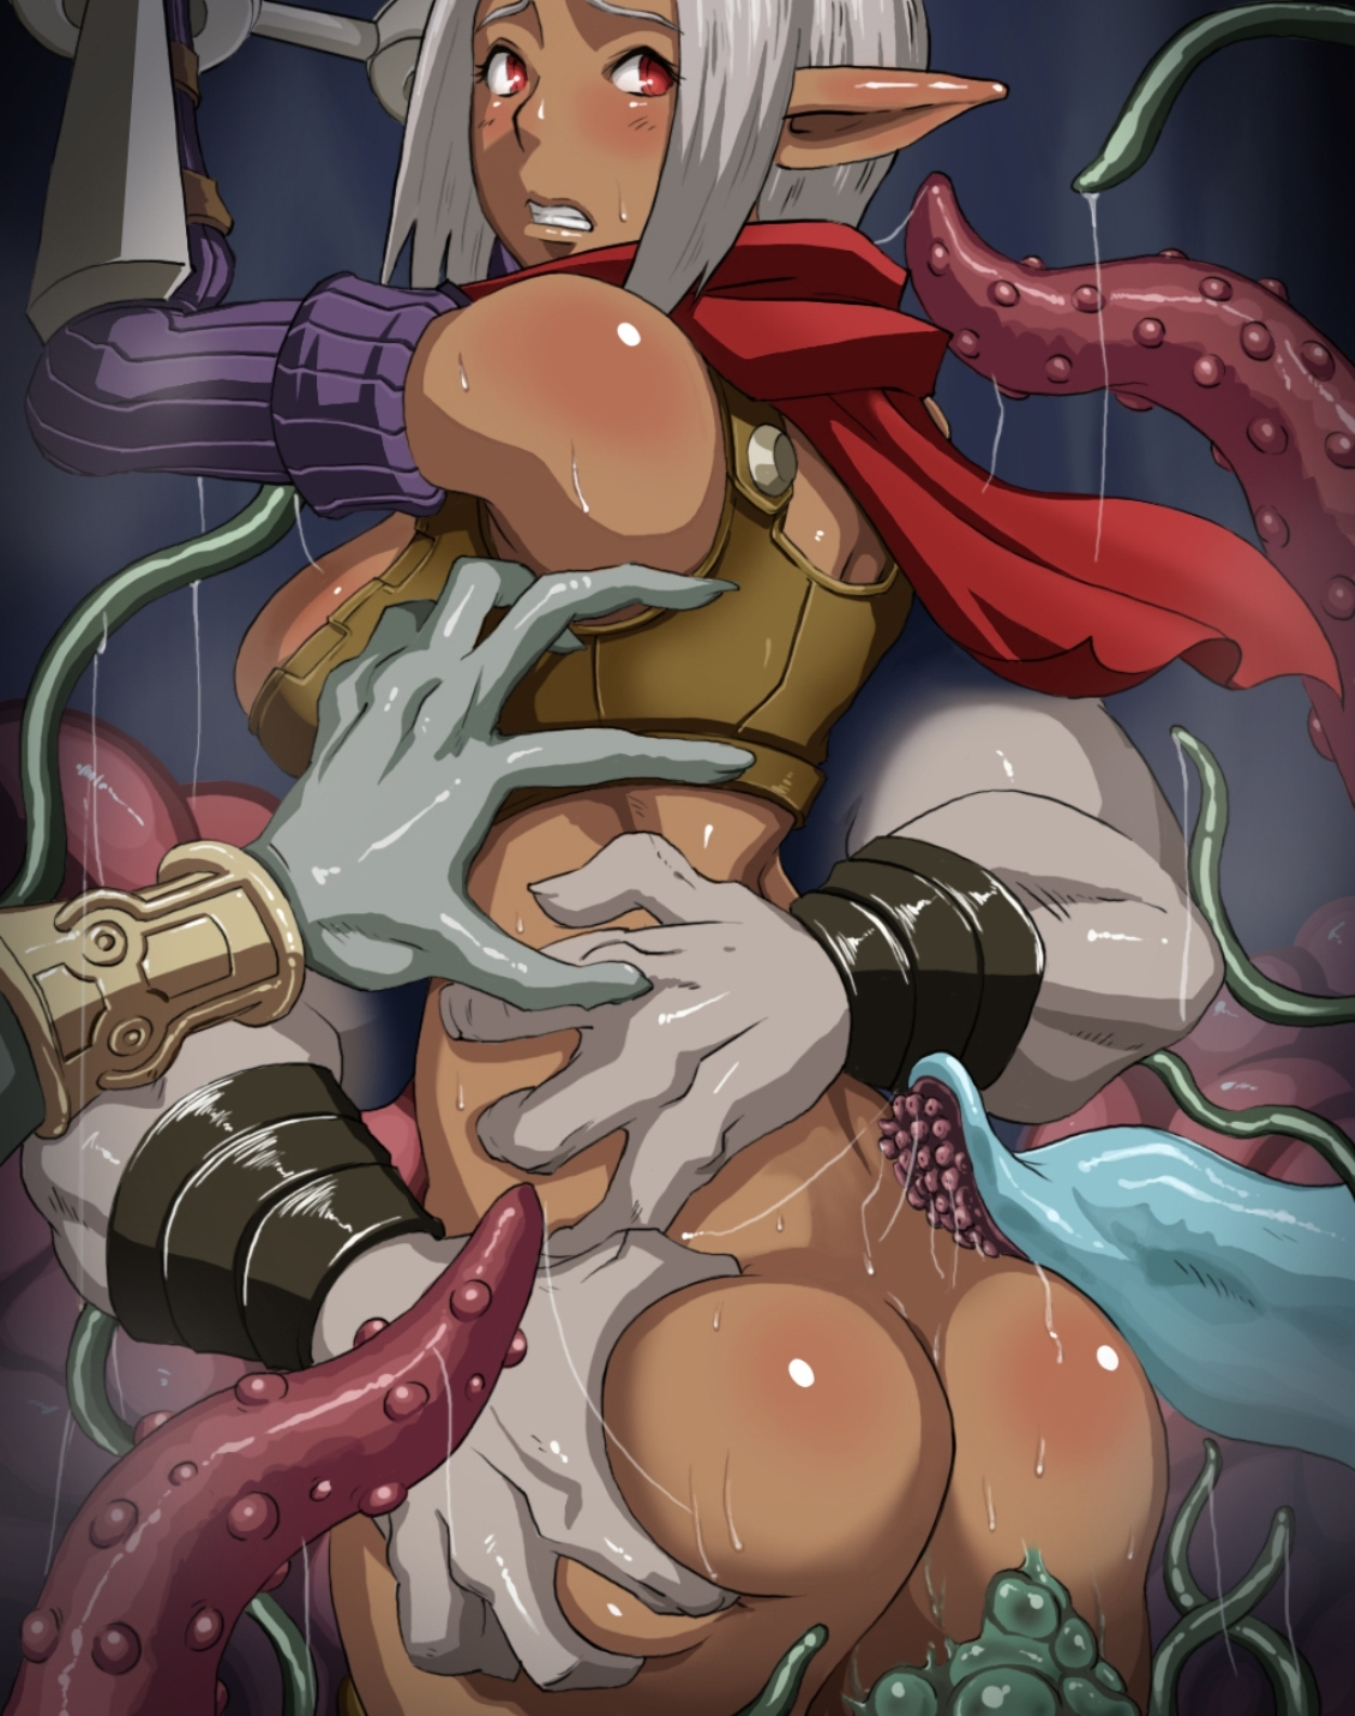 Mother hentai pics hentia download